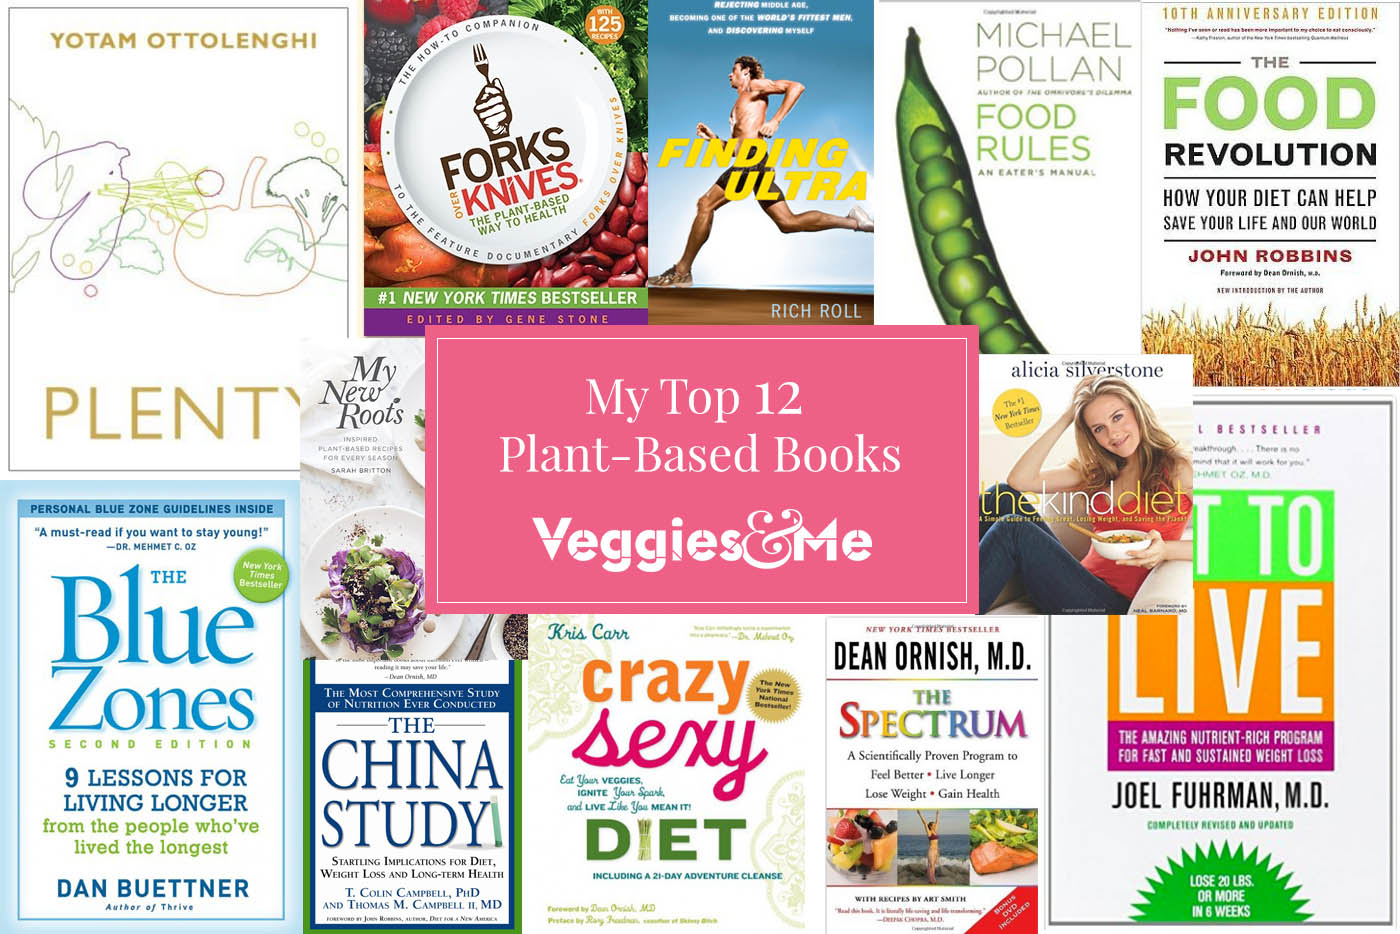 My Top 12 Plant-Based Books